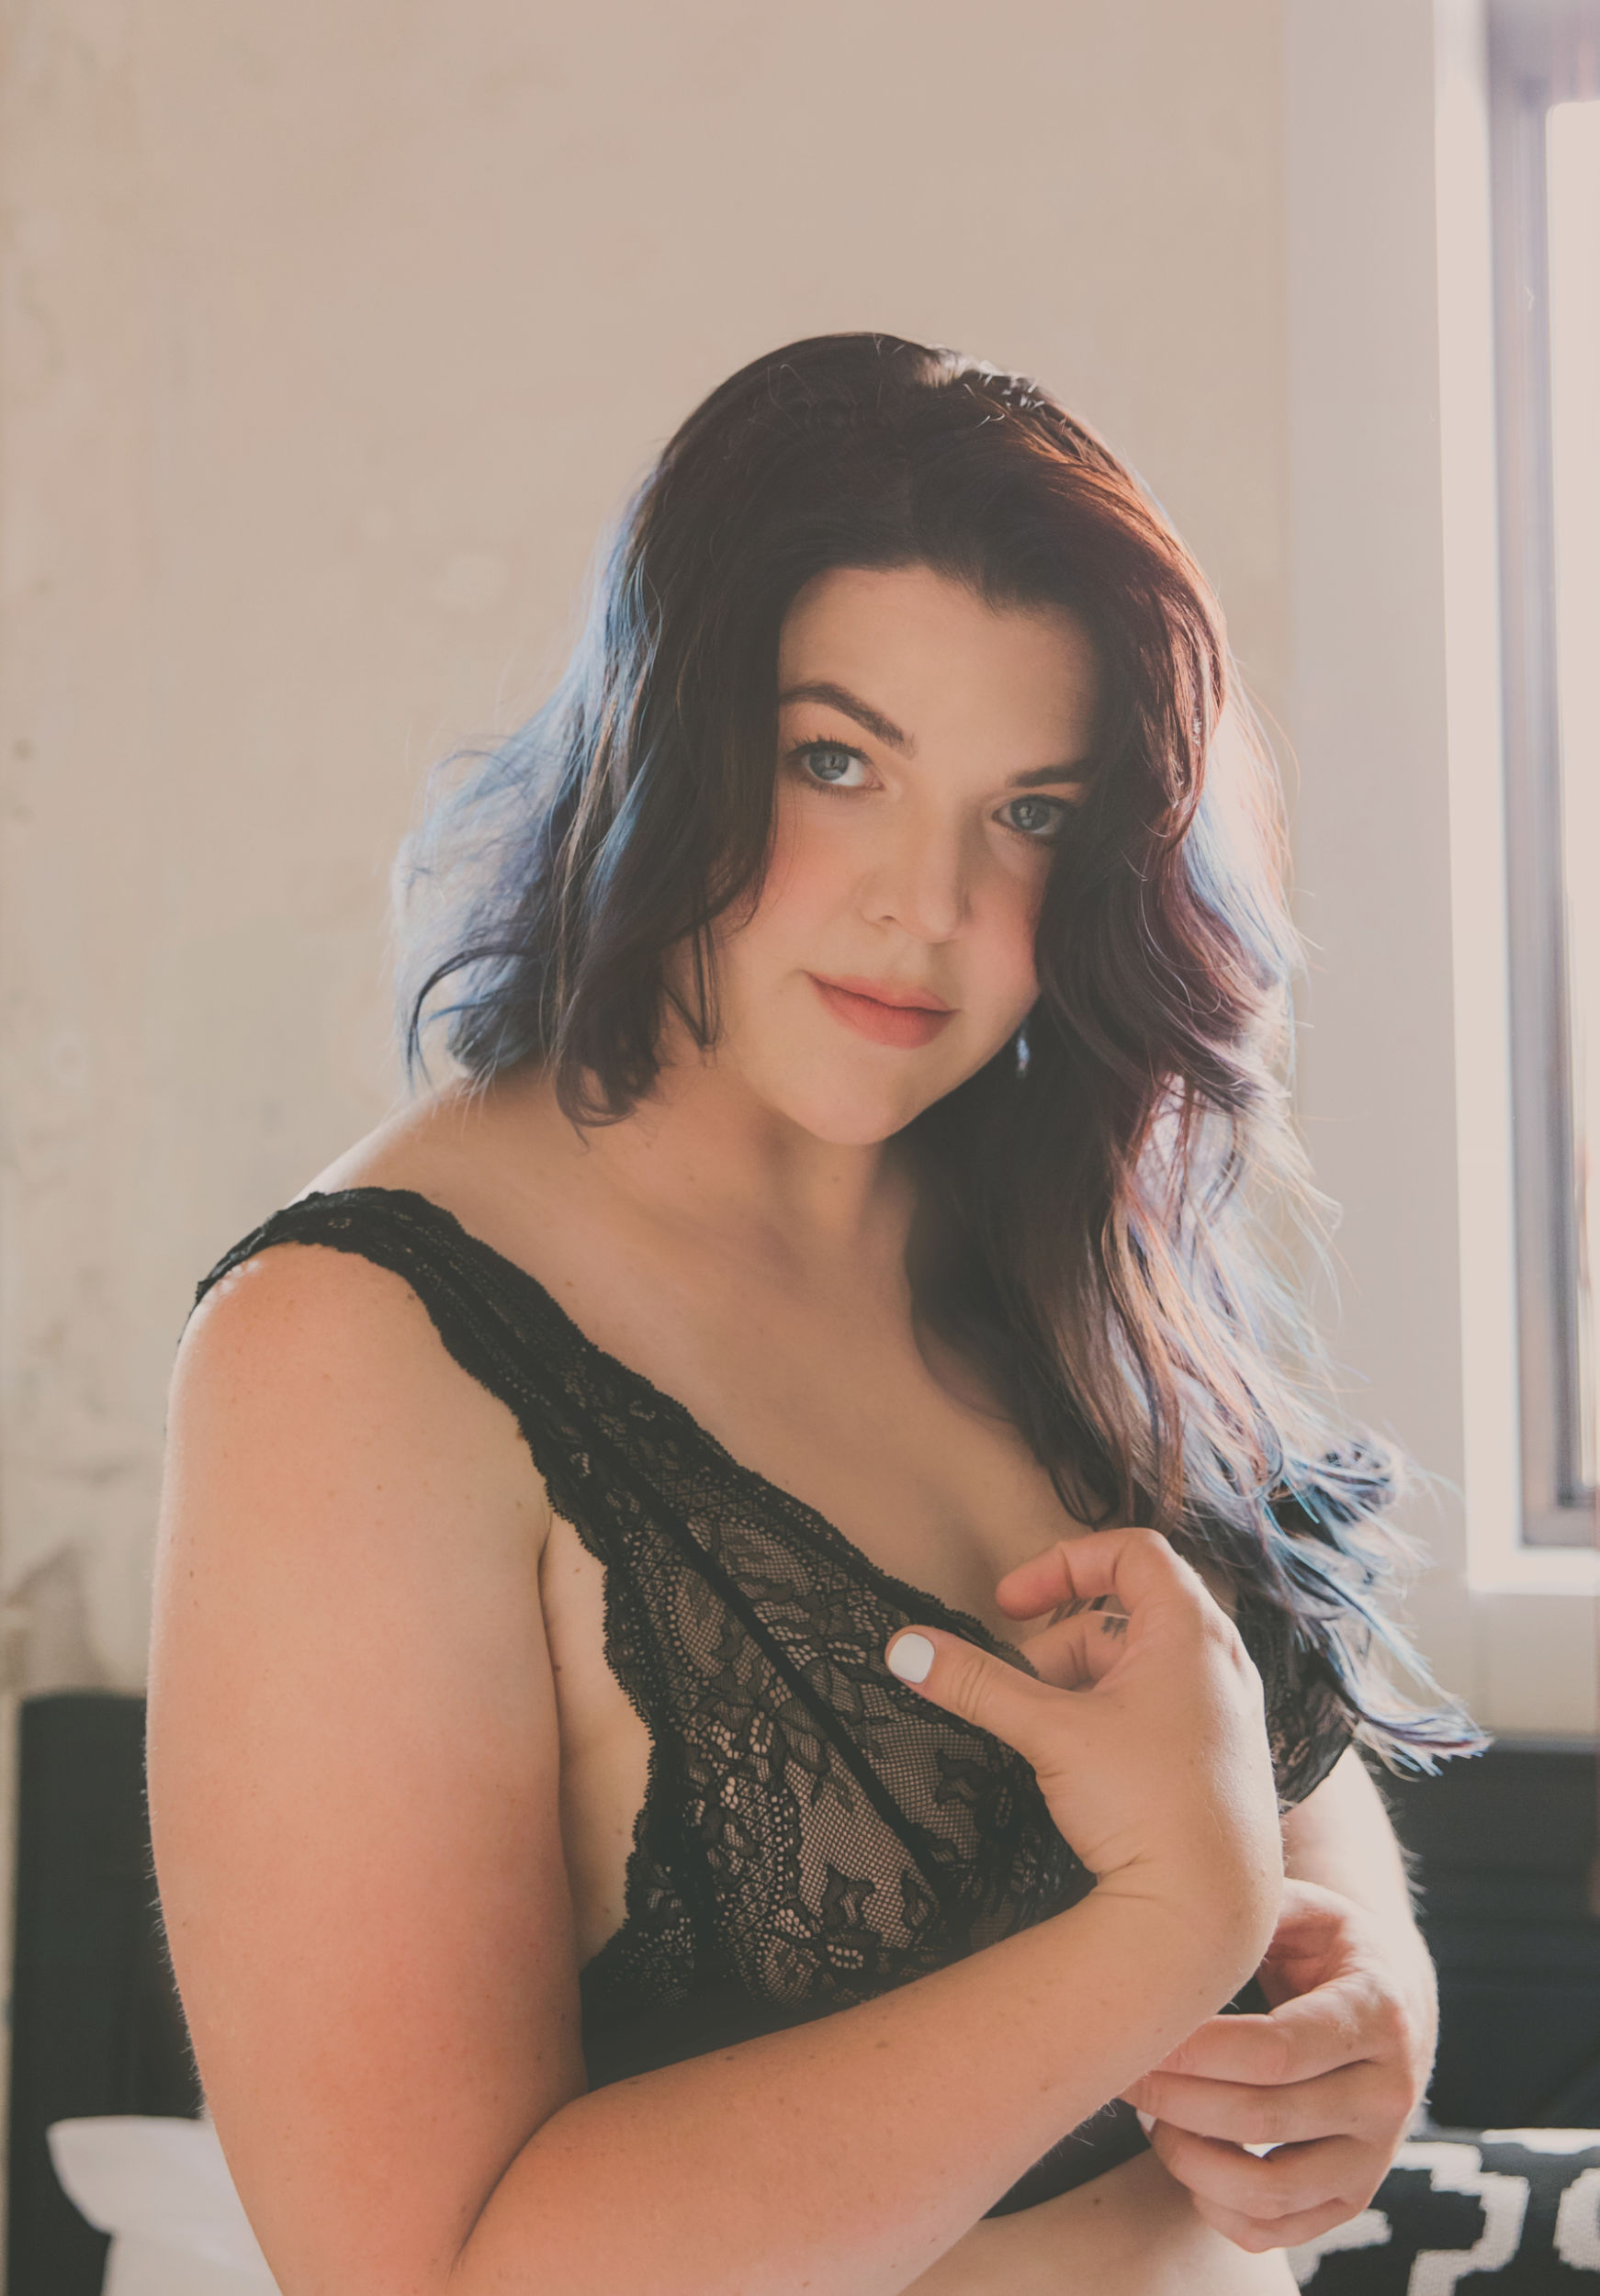 Boudoir photography and glamour photography New Zealand